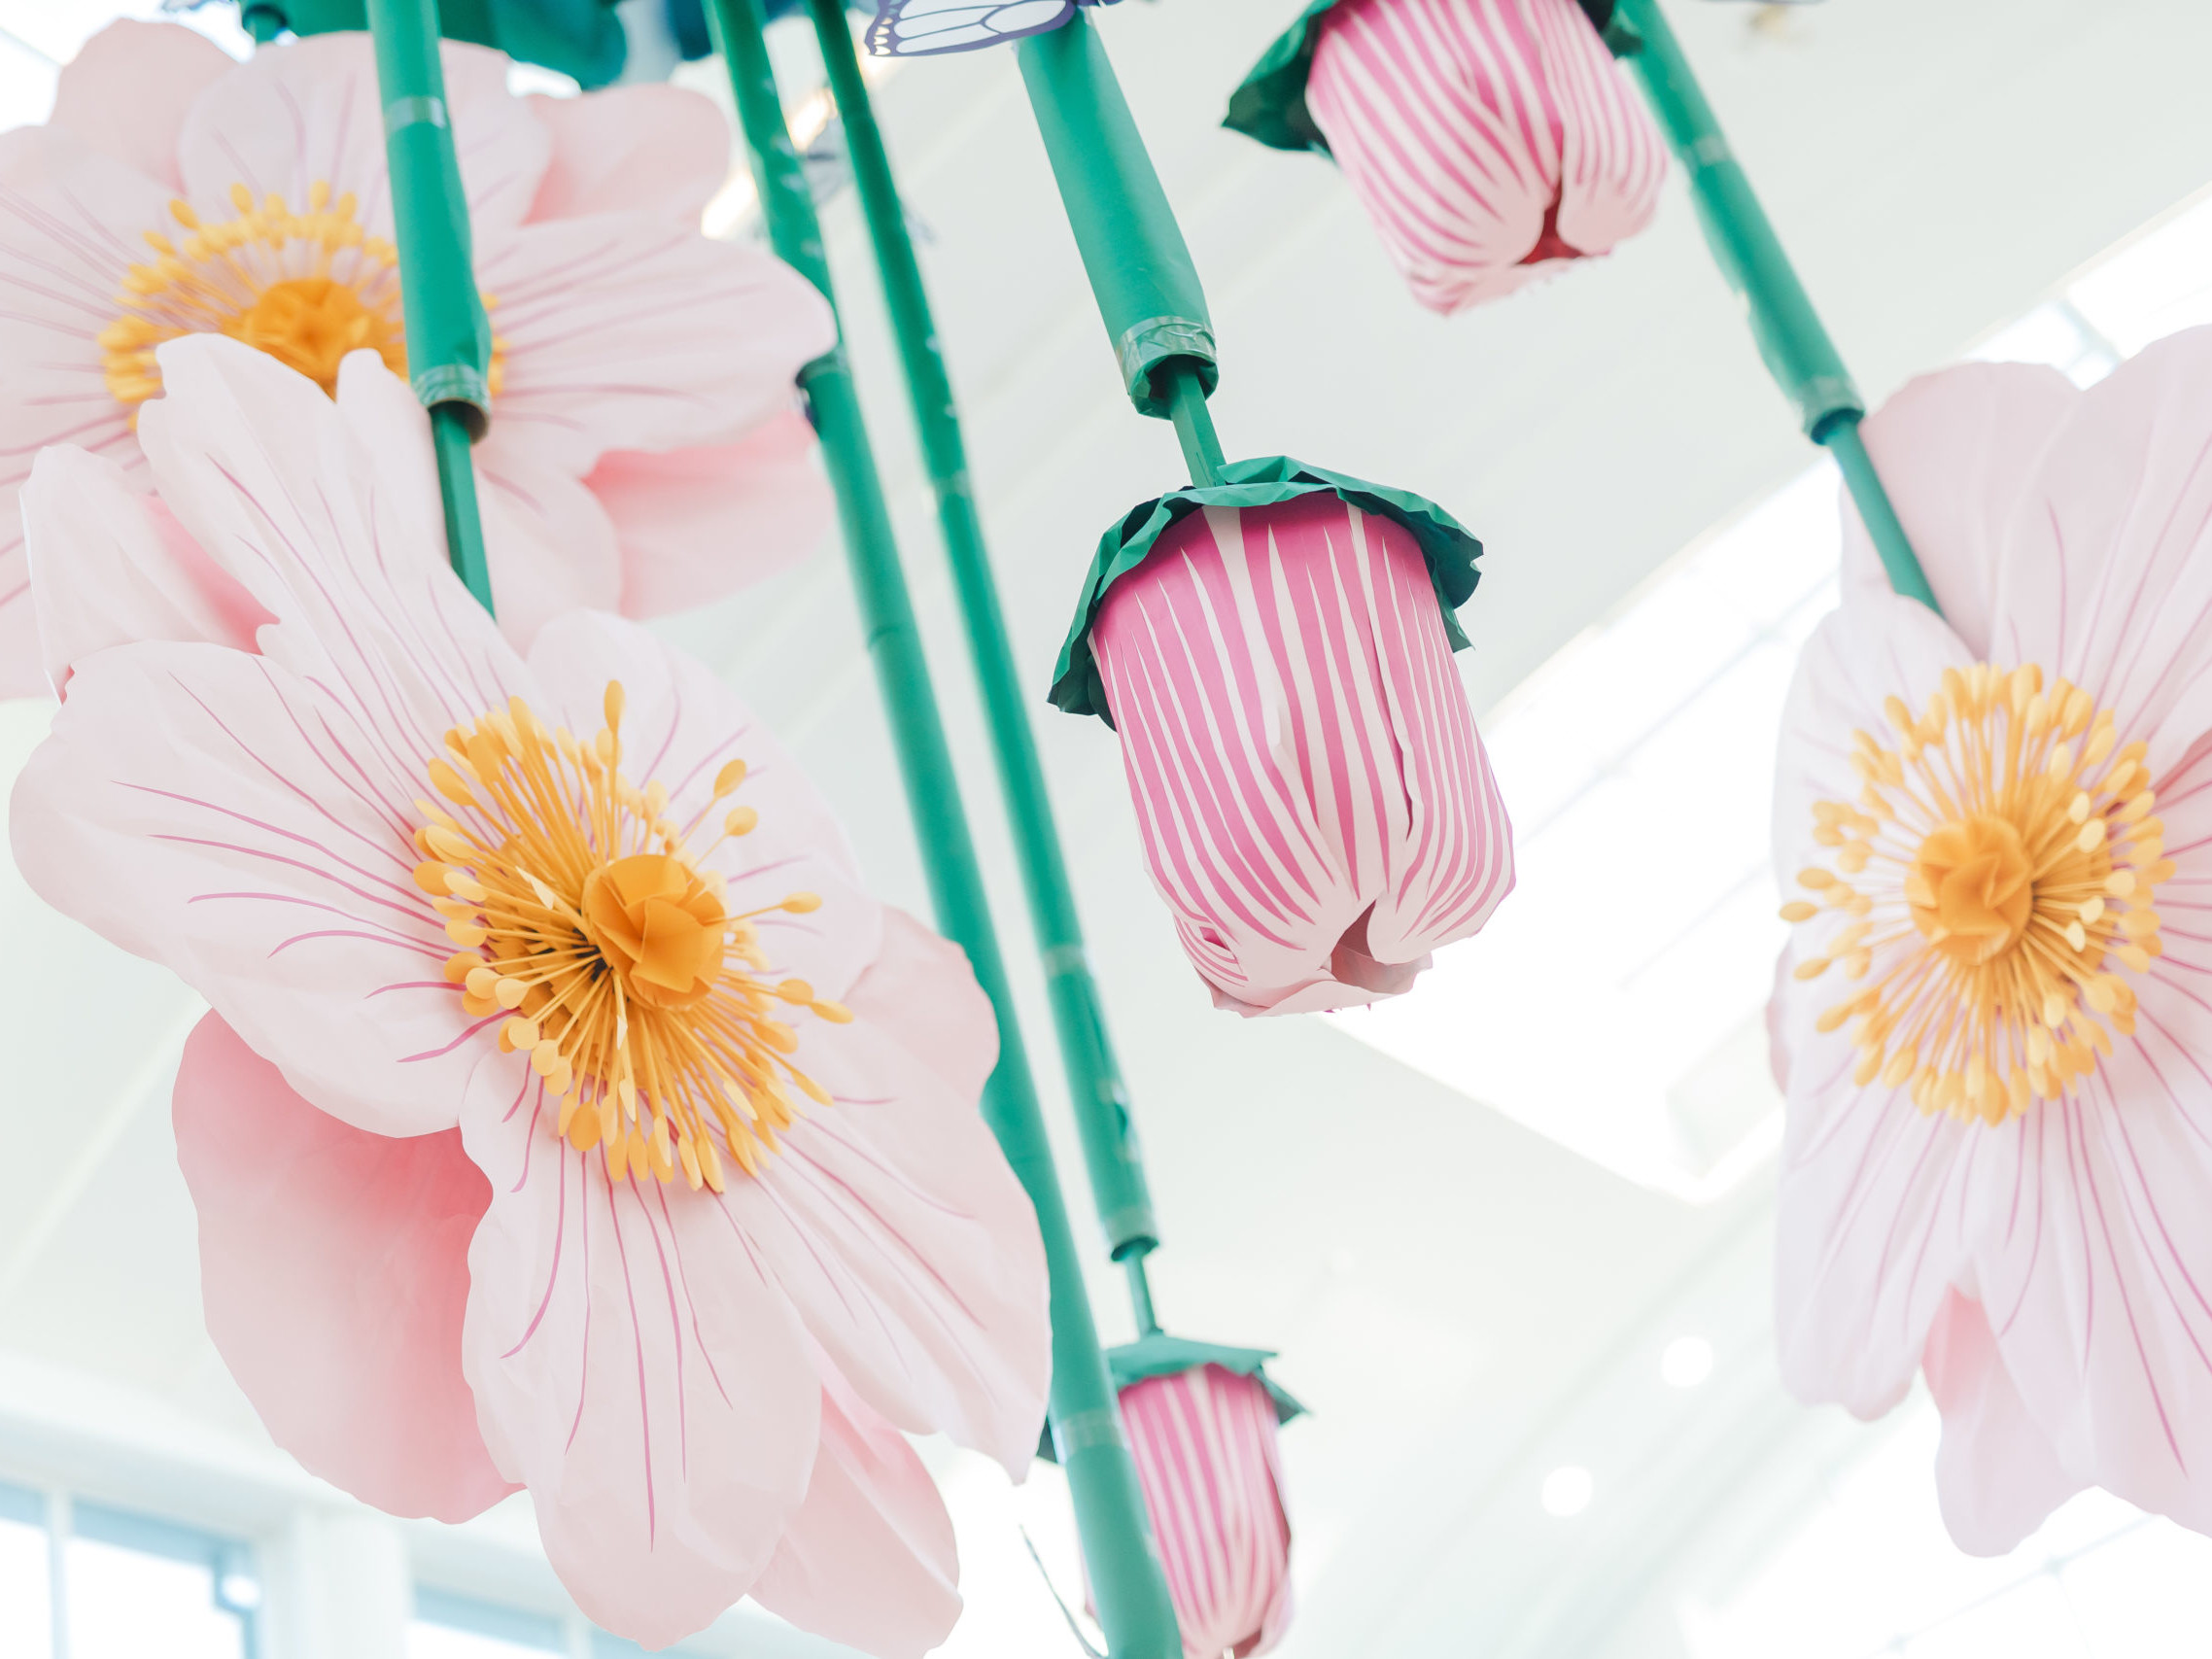 Grand Central: Twist On Carnival Of Flowers, ENGAGE